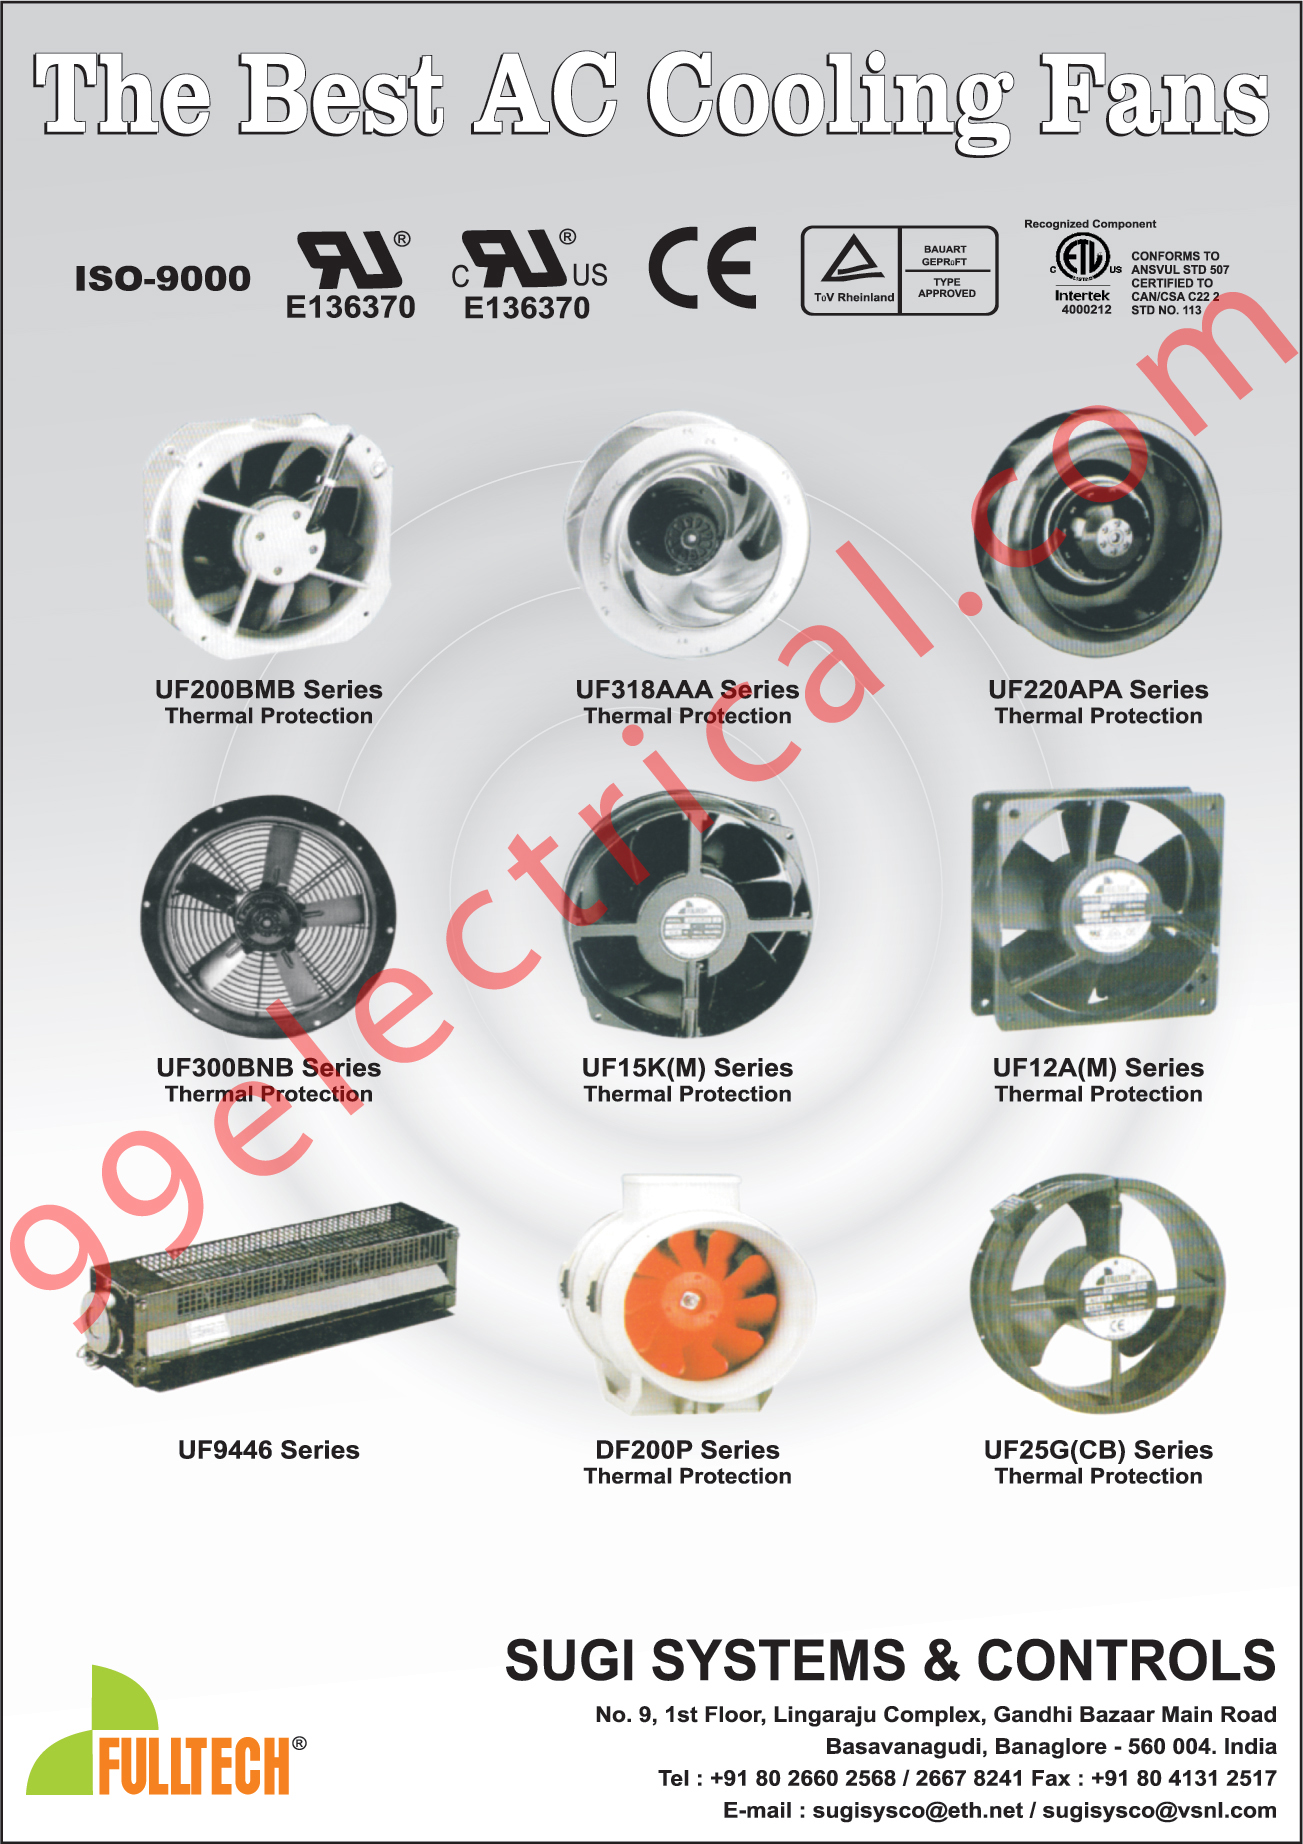 AC Cooling Fans, Thermal Protection, Fans, Electrical Goods, Wire, Cables, Switches, Connectors, MCB Contactor, Electronic Items, Electrical Fans,